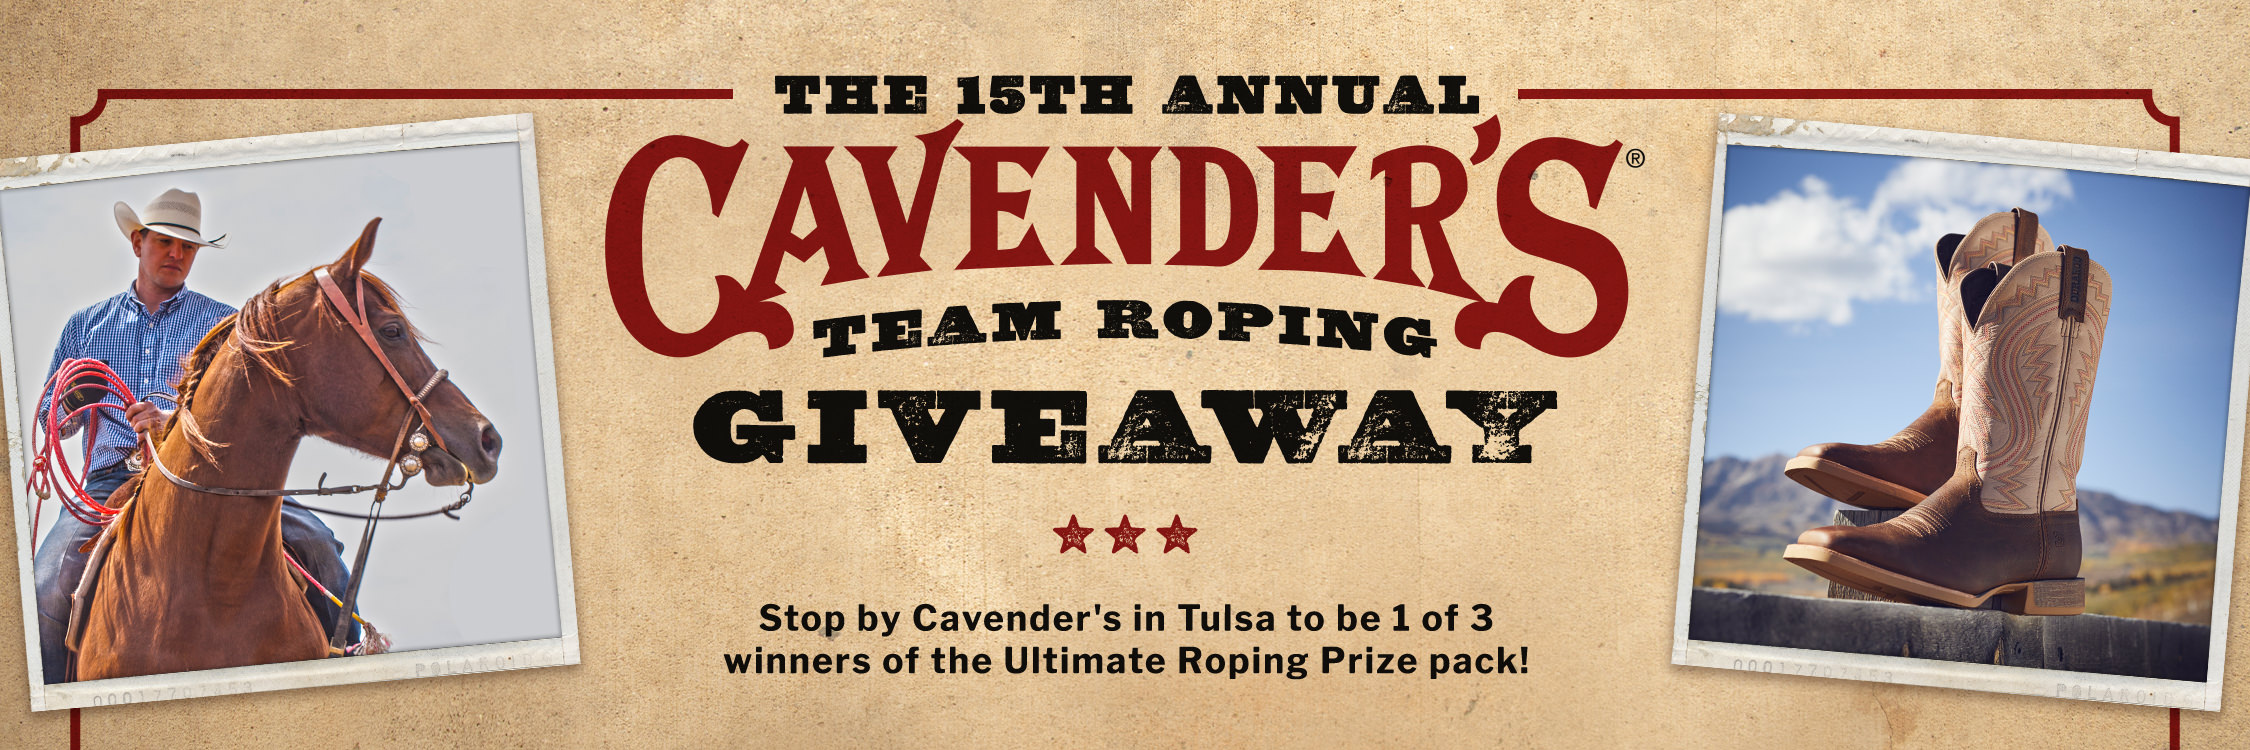 15th Annual Cavender's Team Roping Giveaway. Stop by Cavender's in Tulsa to be 1 of 3 winners of the Ultimate Roping Prize Pack!